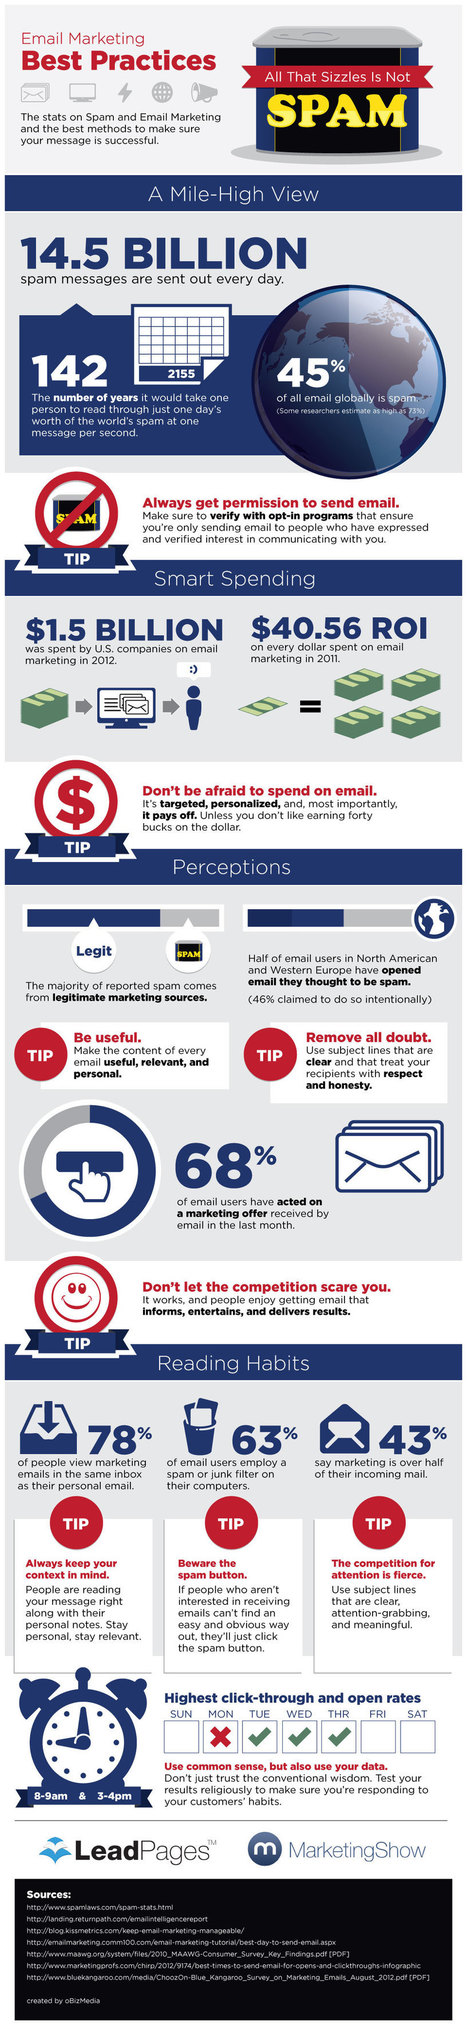 Email Marketing: All That Sizzles Is Not Spam [INFOGRAPHIC] | Social Media Today | AtDotCom Social media | Scoop.it